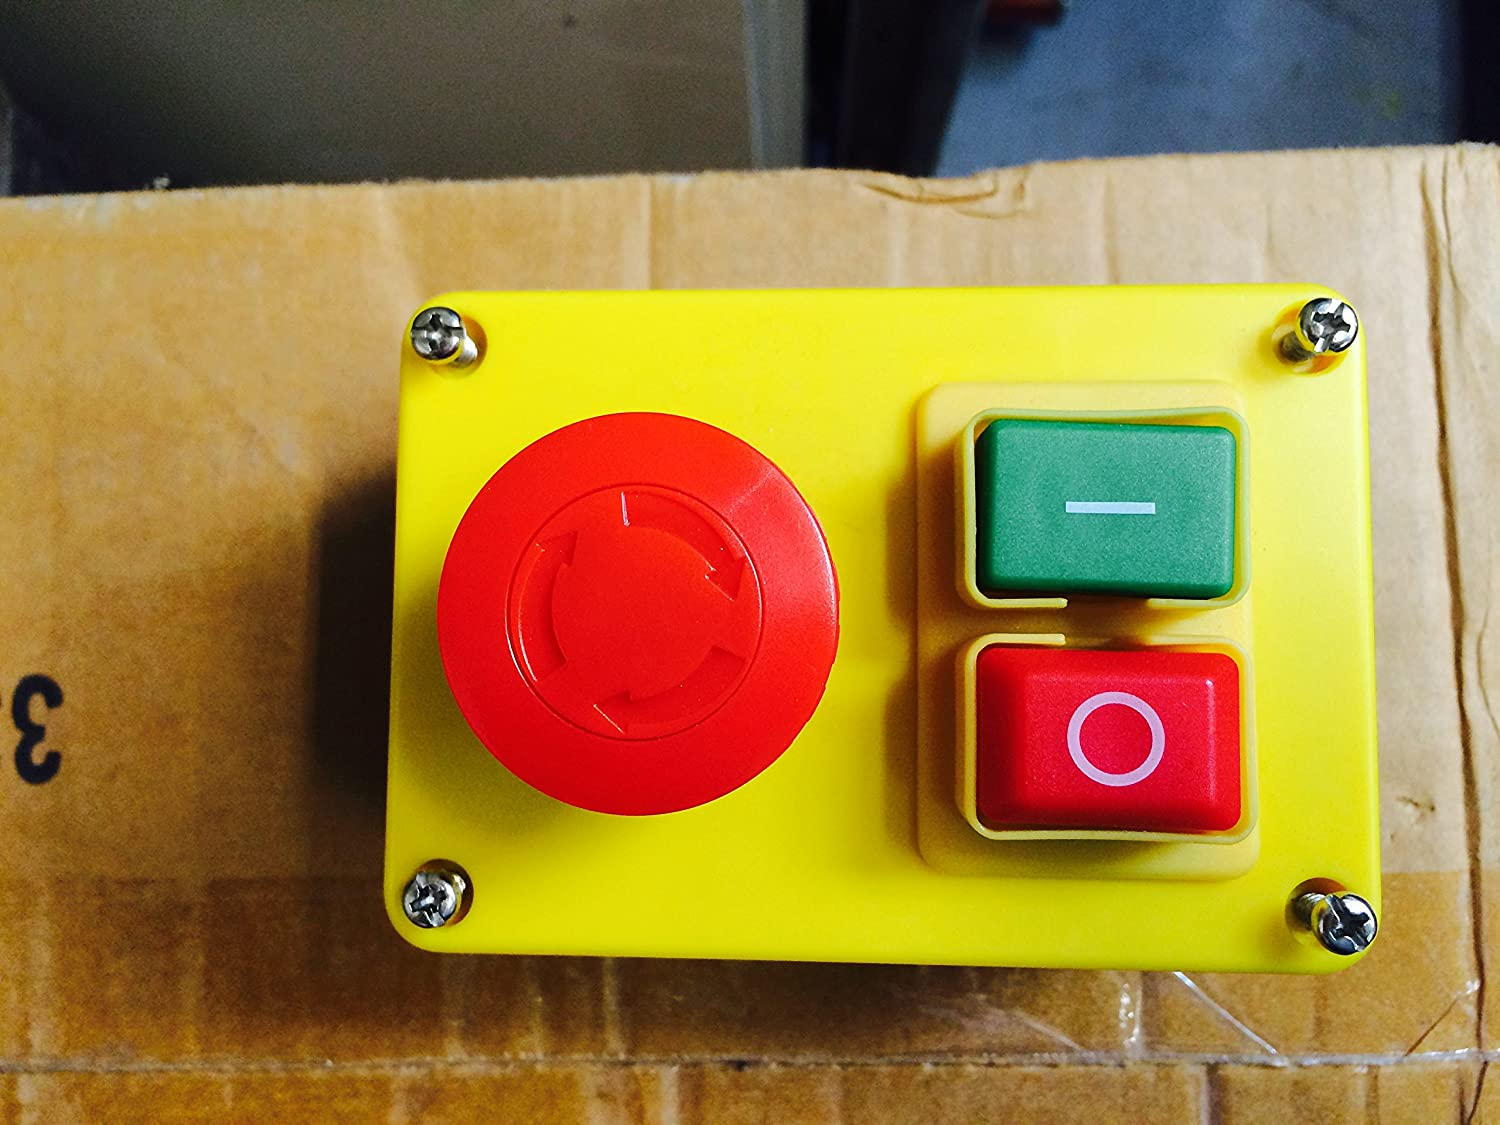 Enclosed kjd17 start stop safety switch with separate emergency enclosed kjd17 start stop safety switch with separate emergency stop button amazon diy tools asfbconference2016 Images